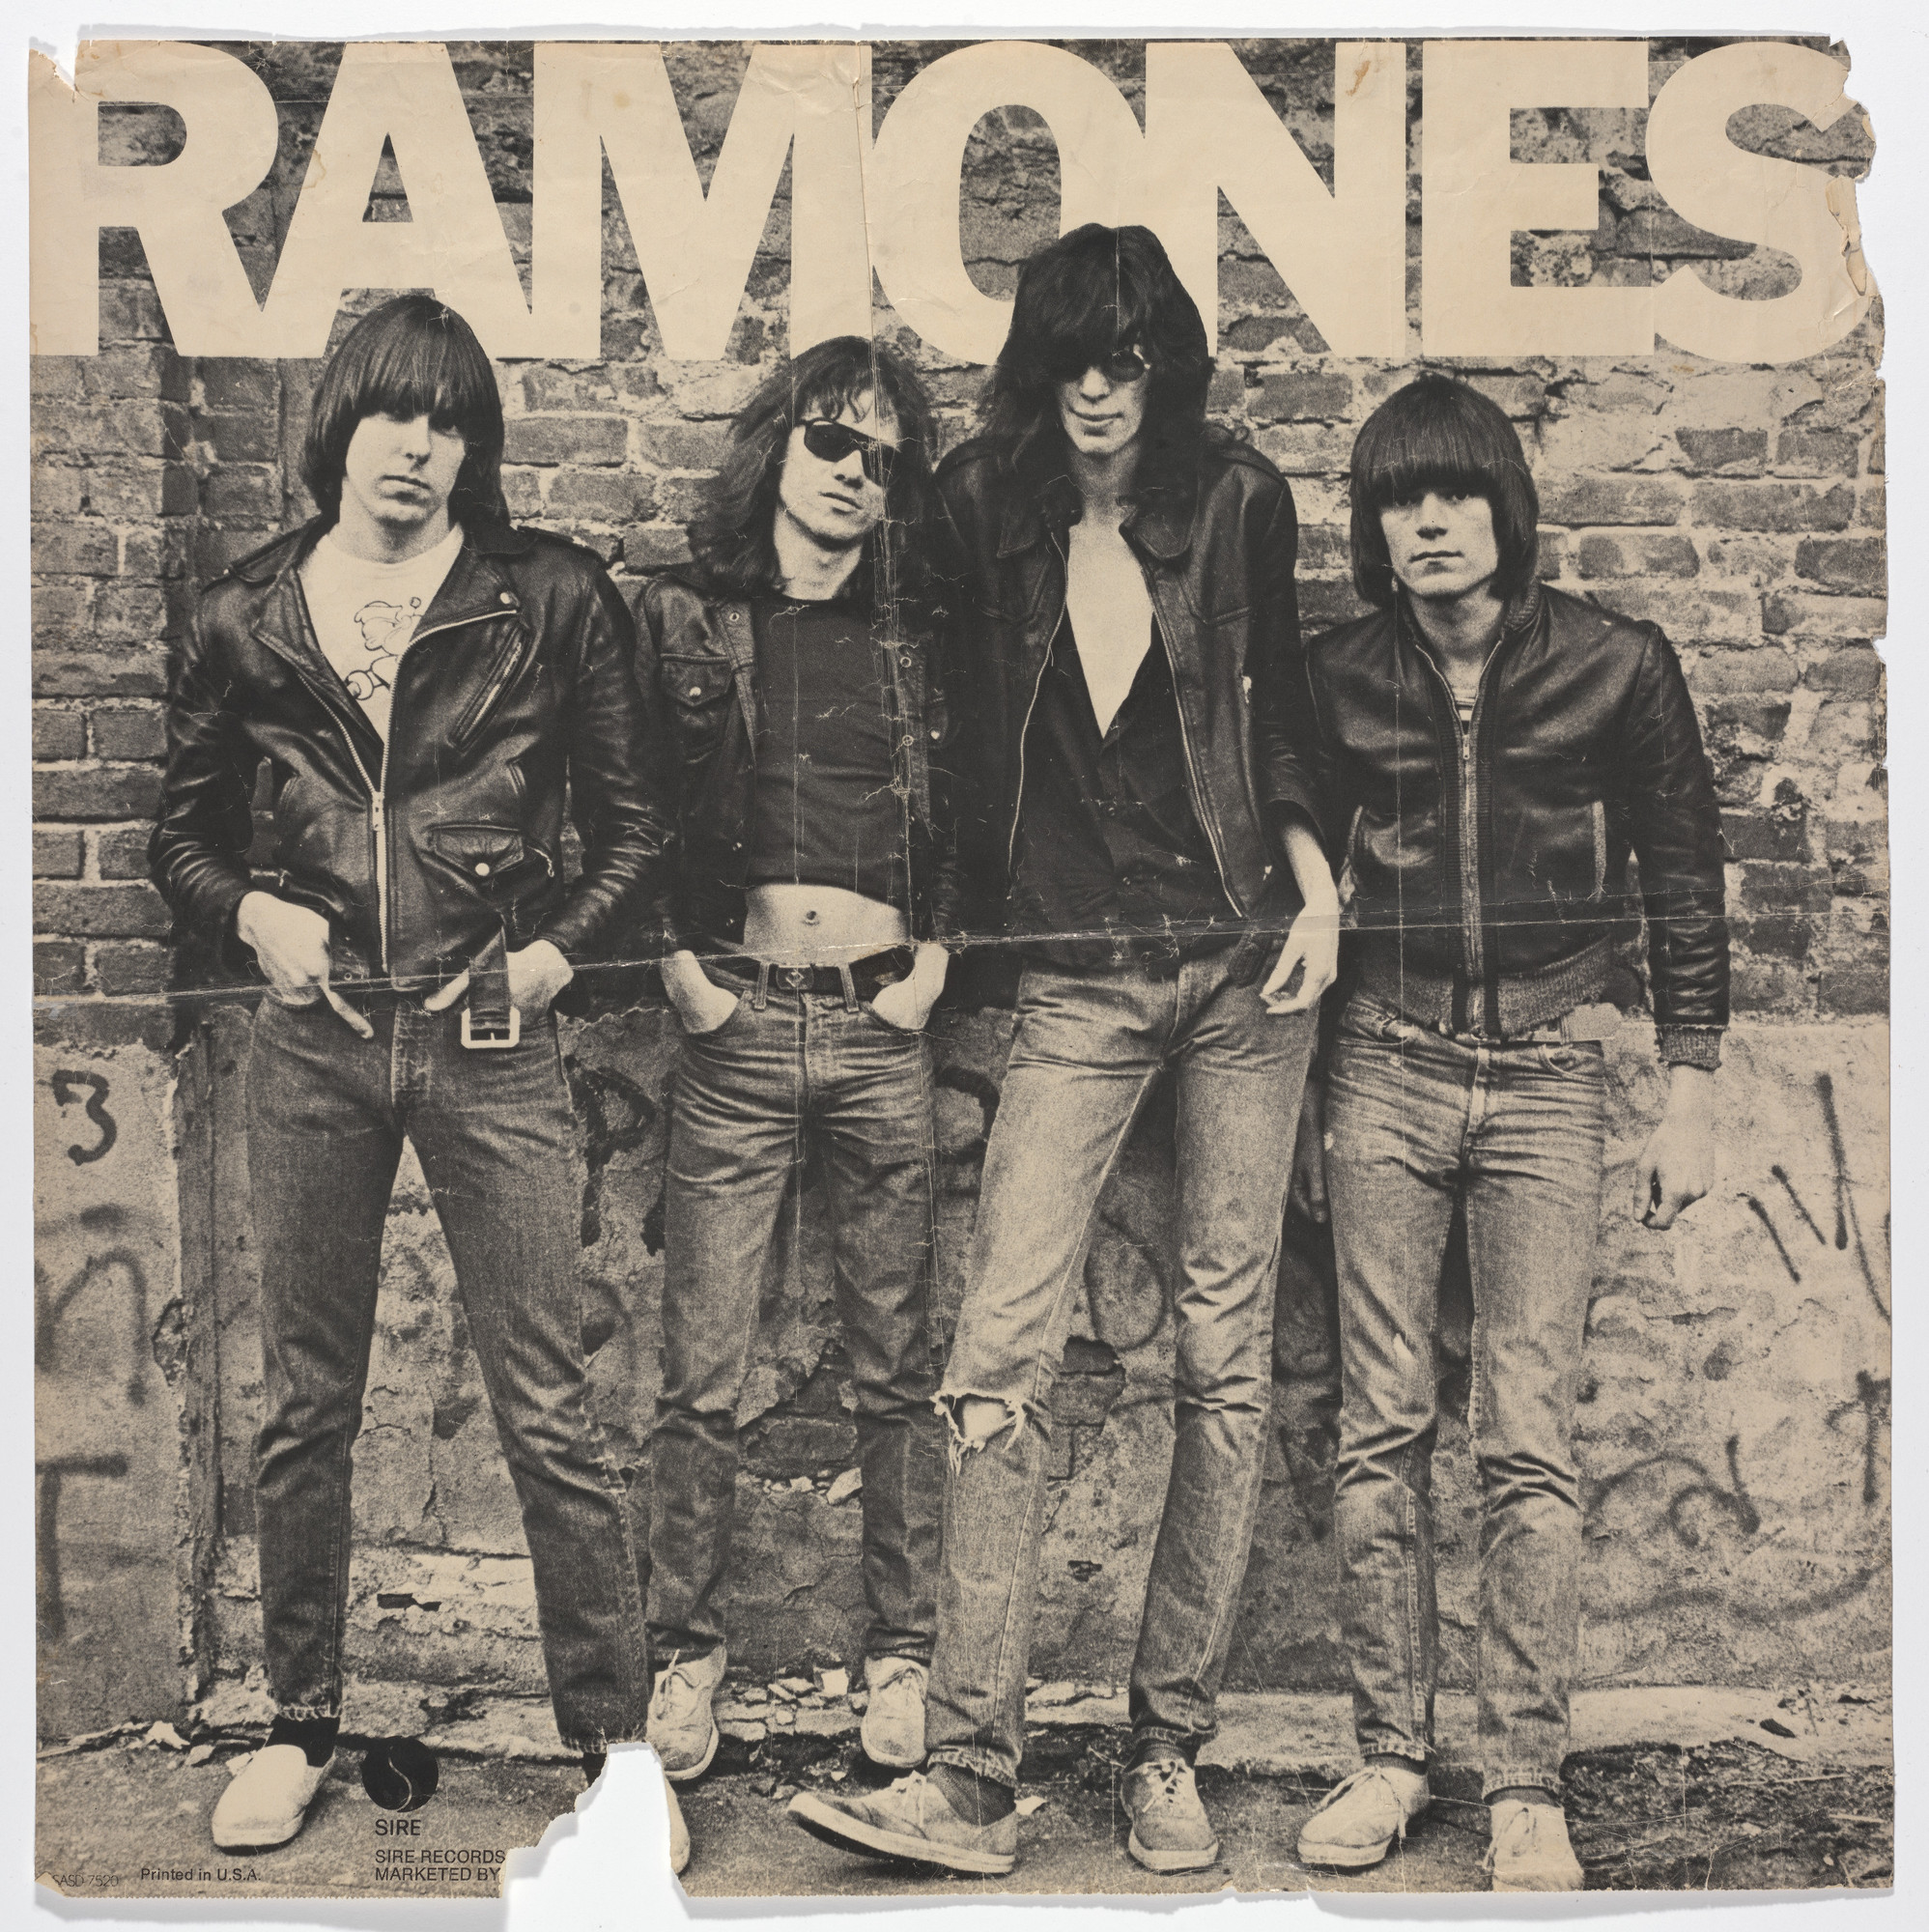 Arturo Vega, Roberta Bayley. Ramones, Debut LP (Poster for album distributed by Sire Records, New York). 1976